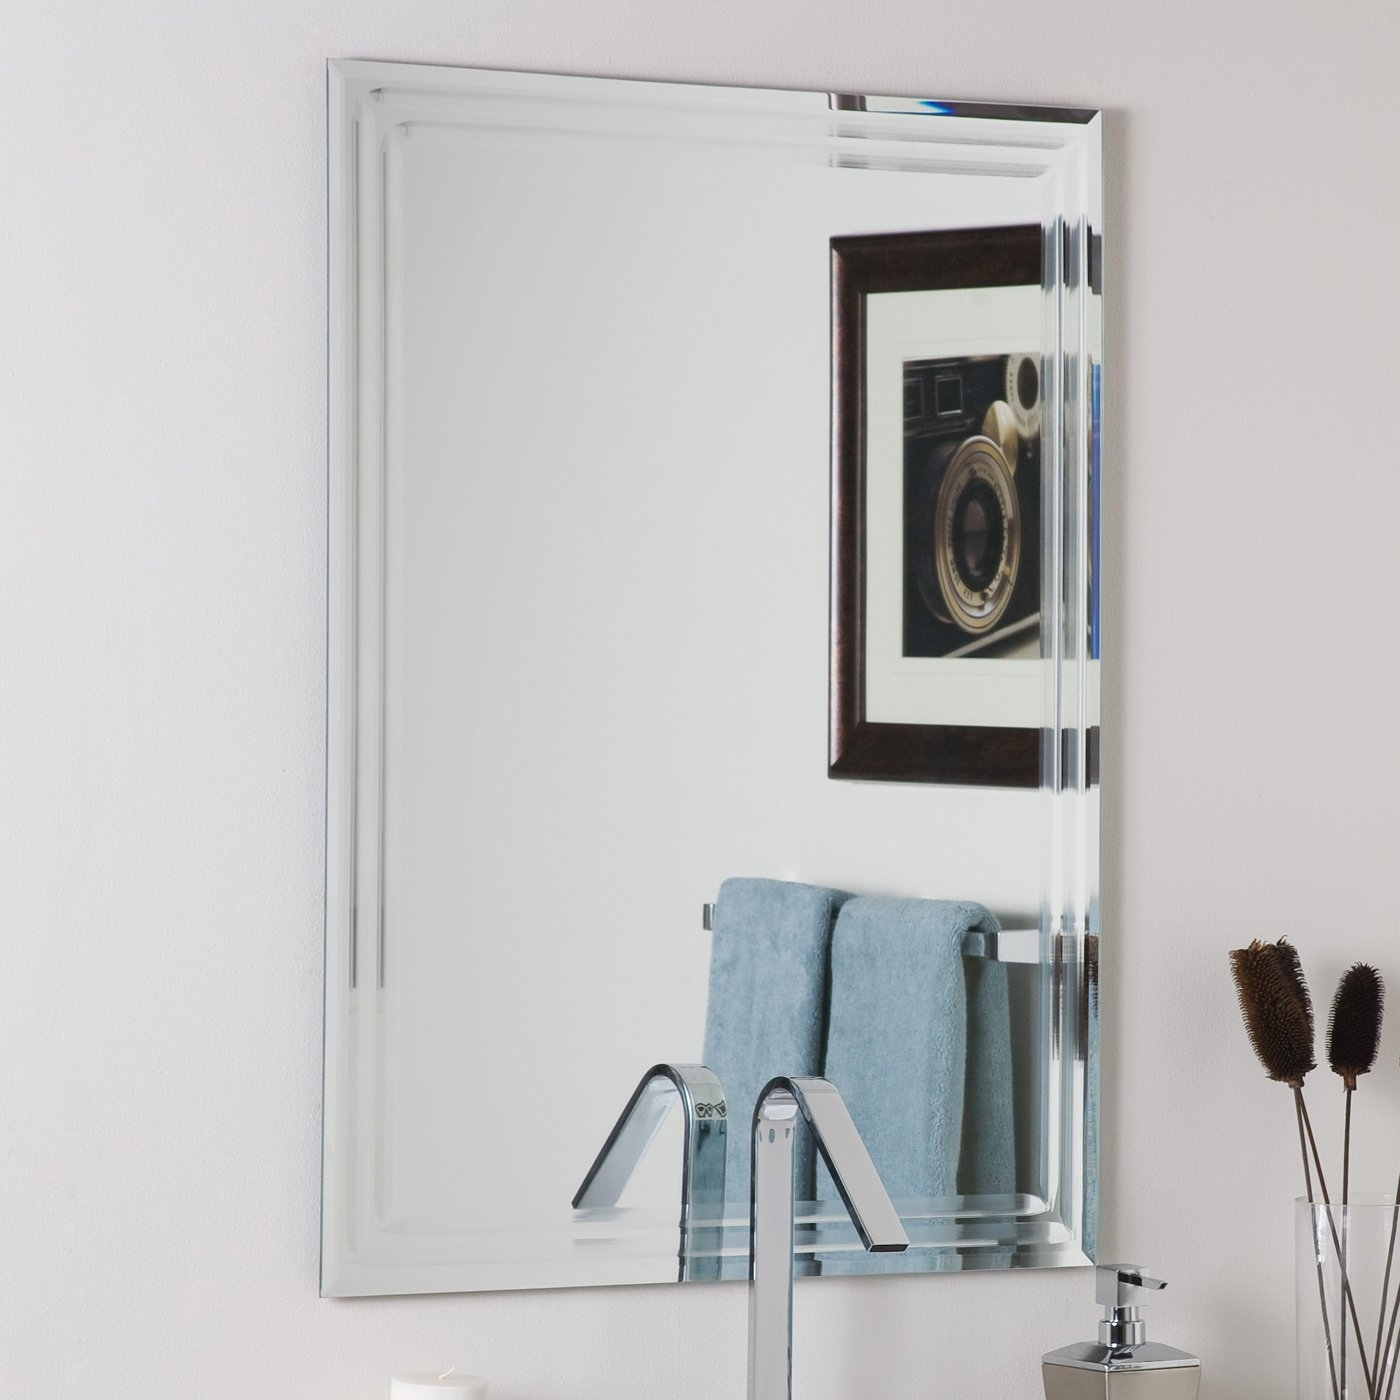 Bathroom Vanity Mirrors Lowes Canada - layjao